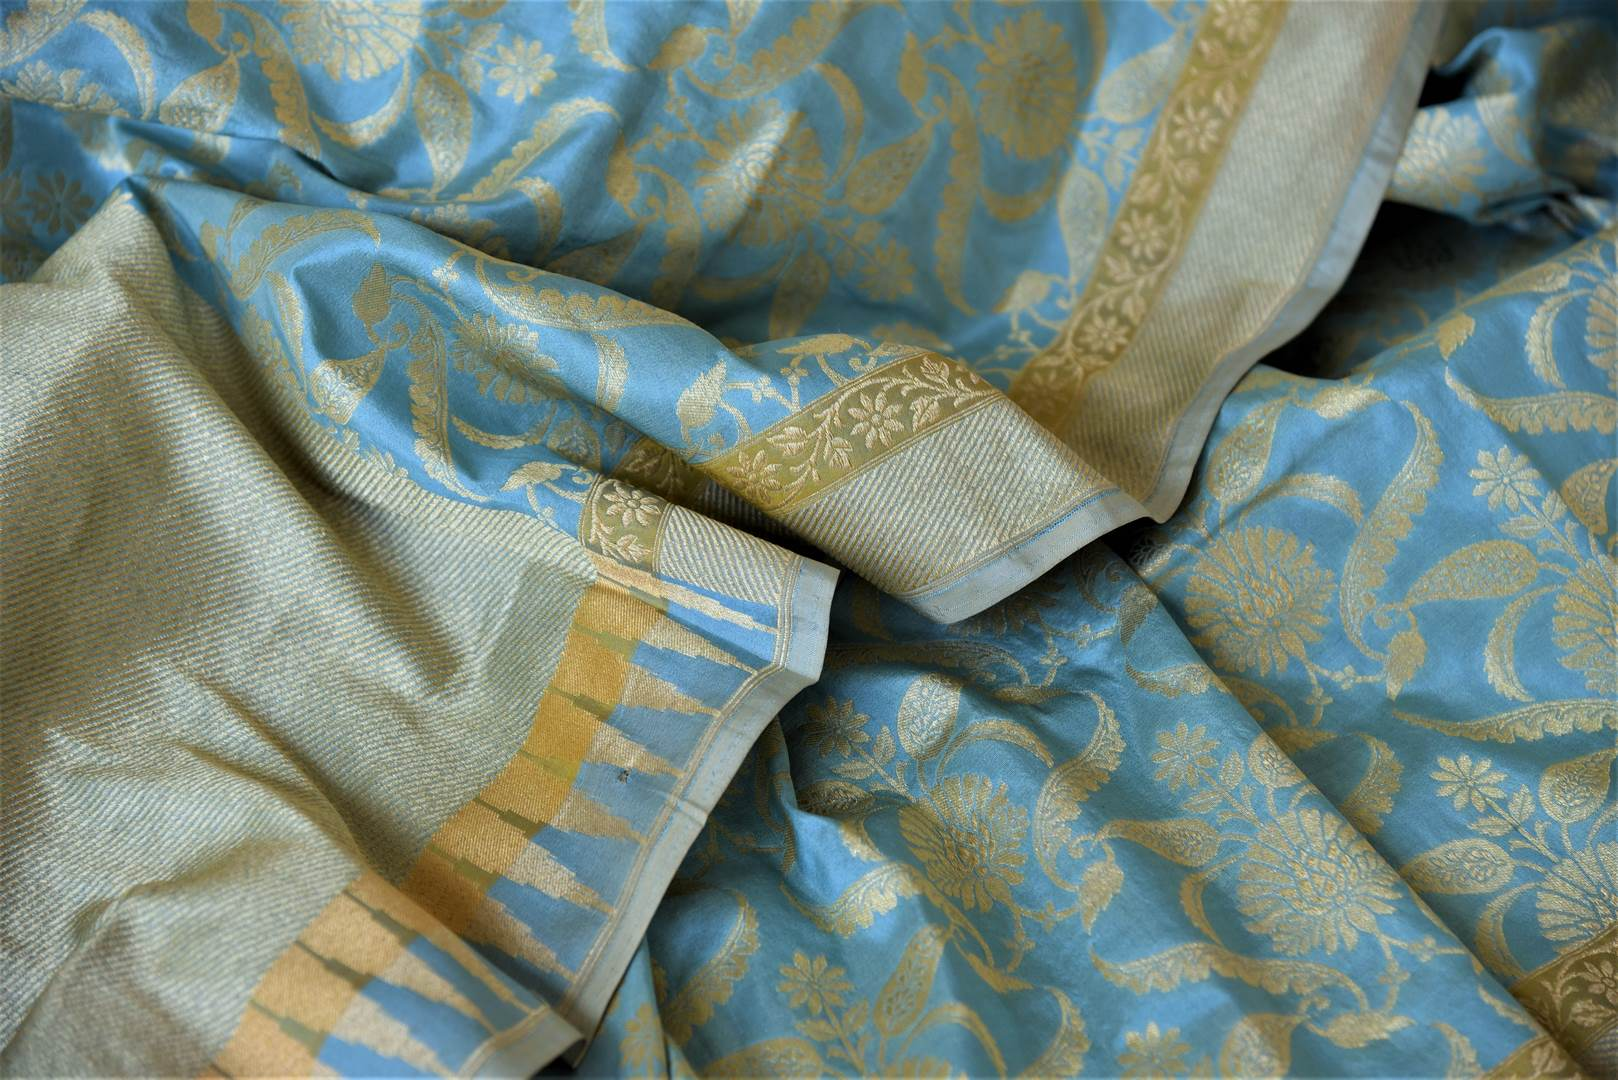 Buy sky blue Banarsi silk saree online in USA with overall zari work. Keep it elegant with zari work sarees, Banarasi silk sarees, handwoven sarees from Pure Elegance Indian fashion boutique in USA. We bring a especially curated collection of ethnic sarees for Indian women in USA under one roof!-details